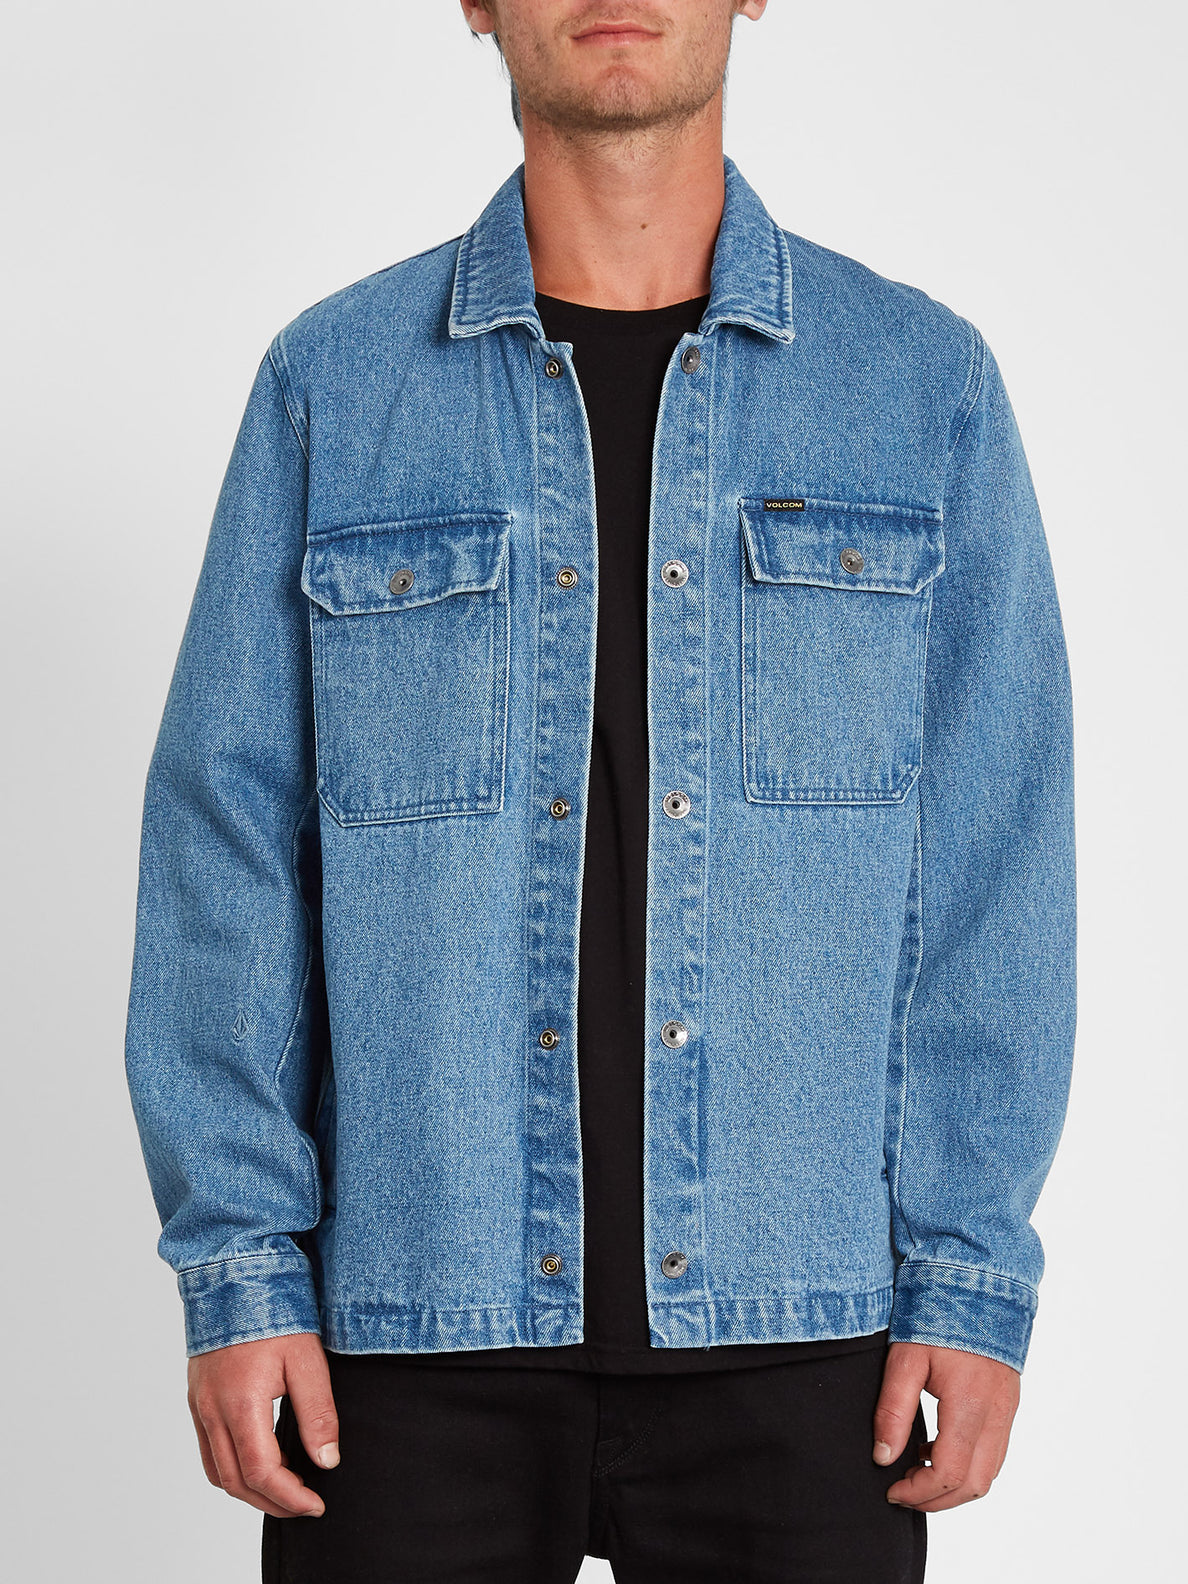 Likeaton Jacket - Denim (A1512105_DEN) [2]